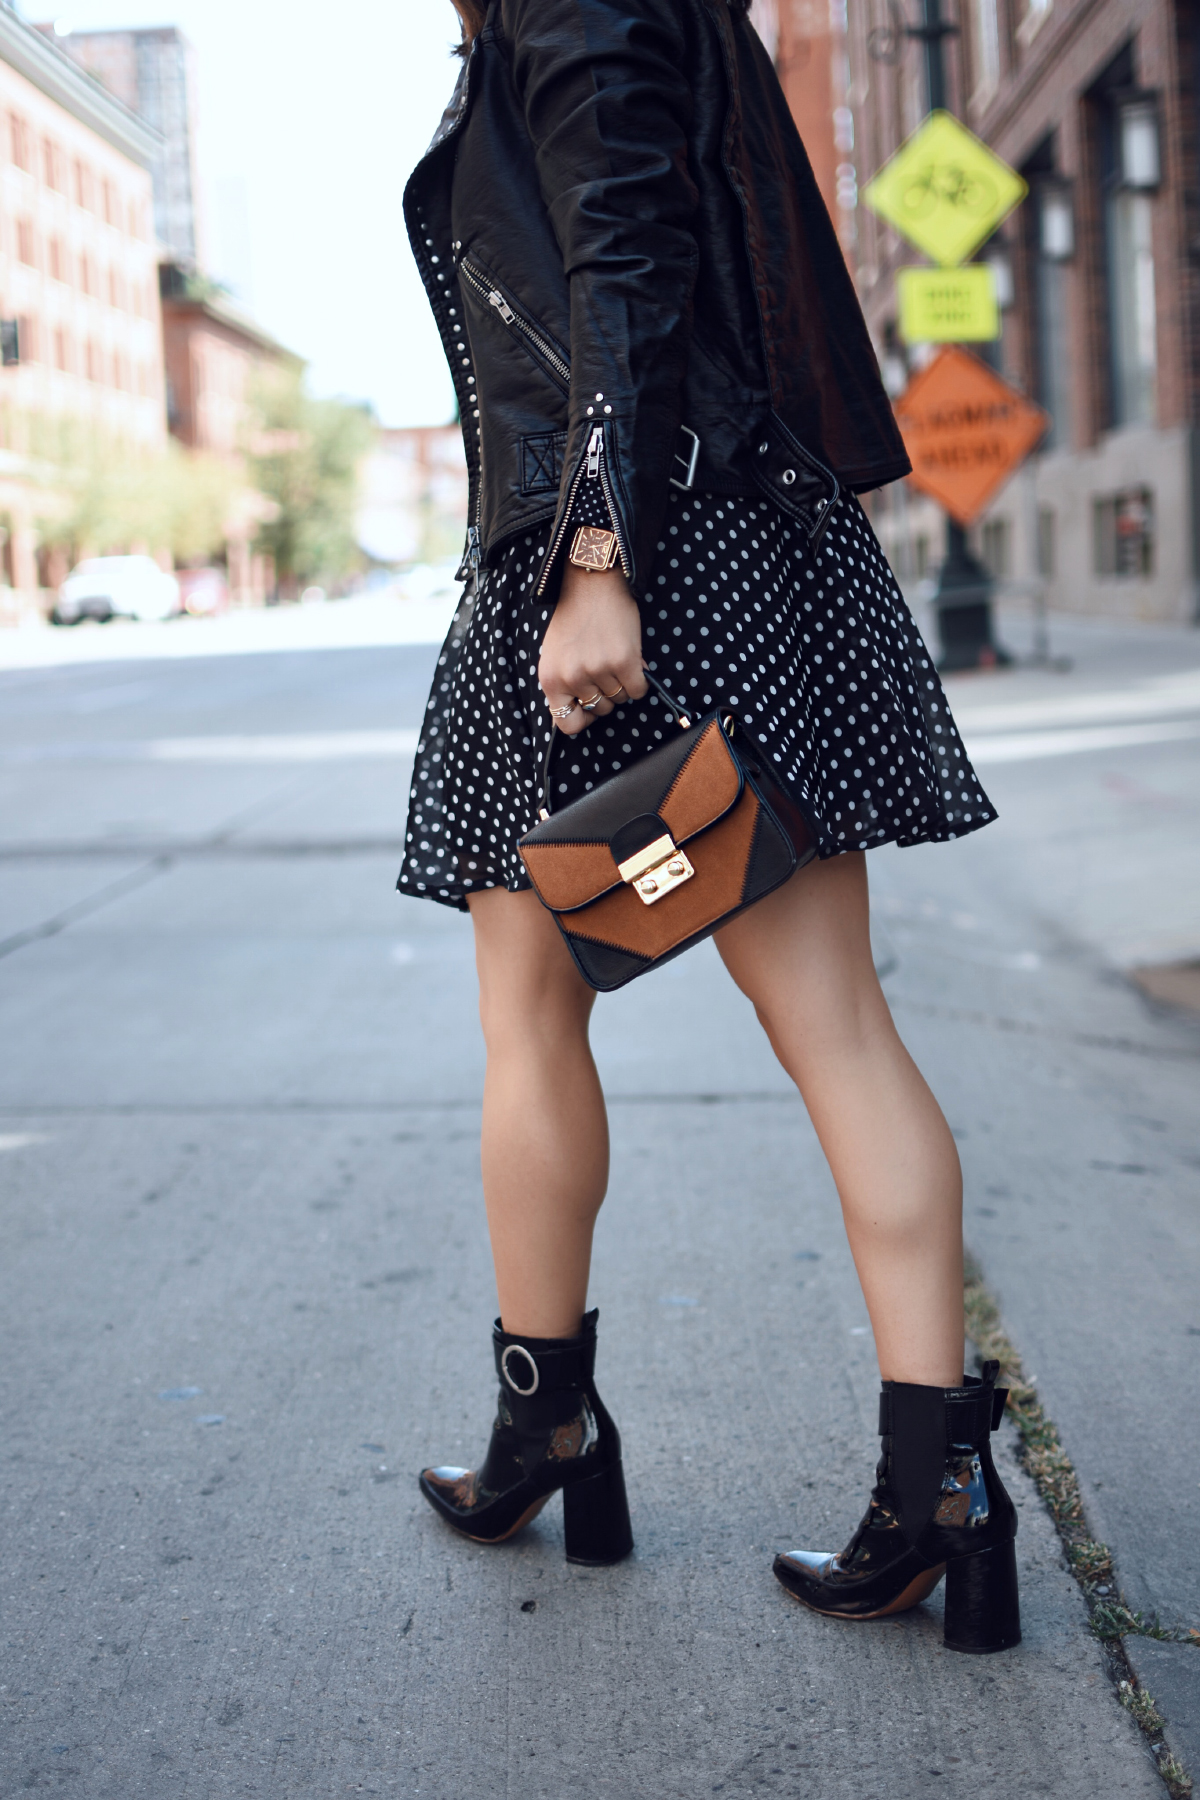 Carolina Hellal of Chic Talk wearing a Free People faux leather jacket, Renamed polka dot dress and h&m black patent leather booties.